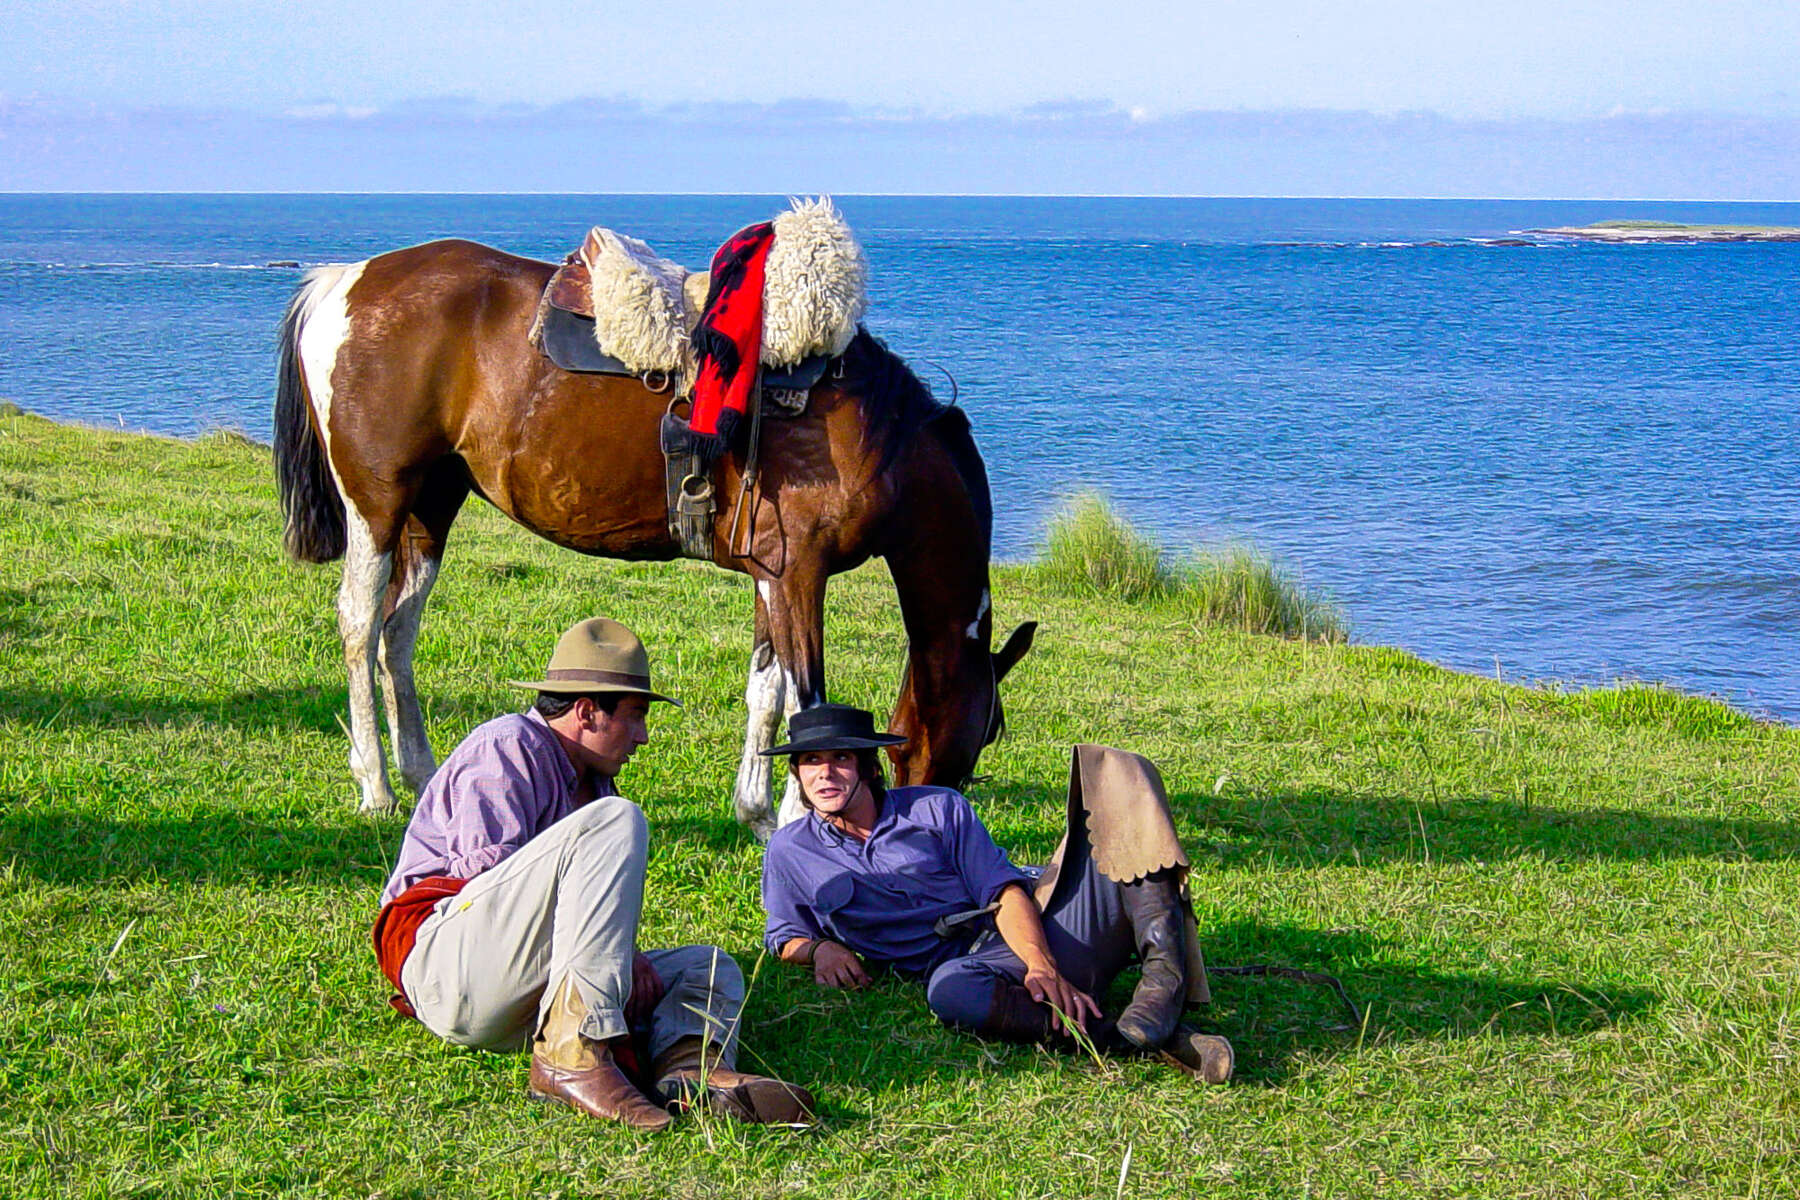 Trail ride through South America on horseback